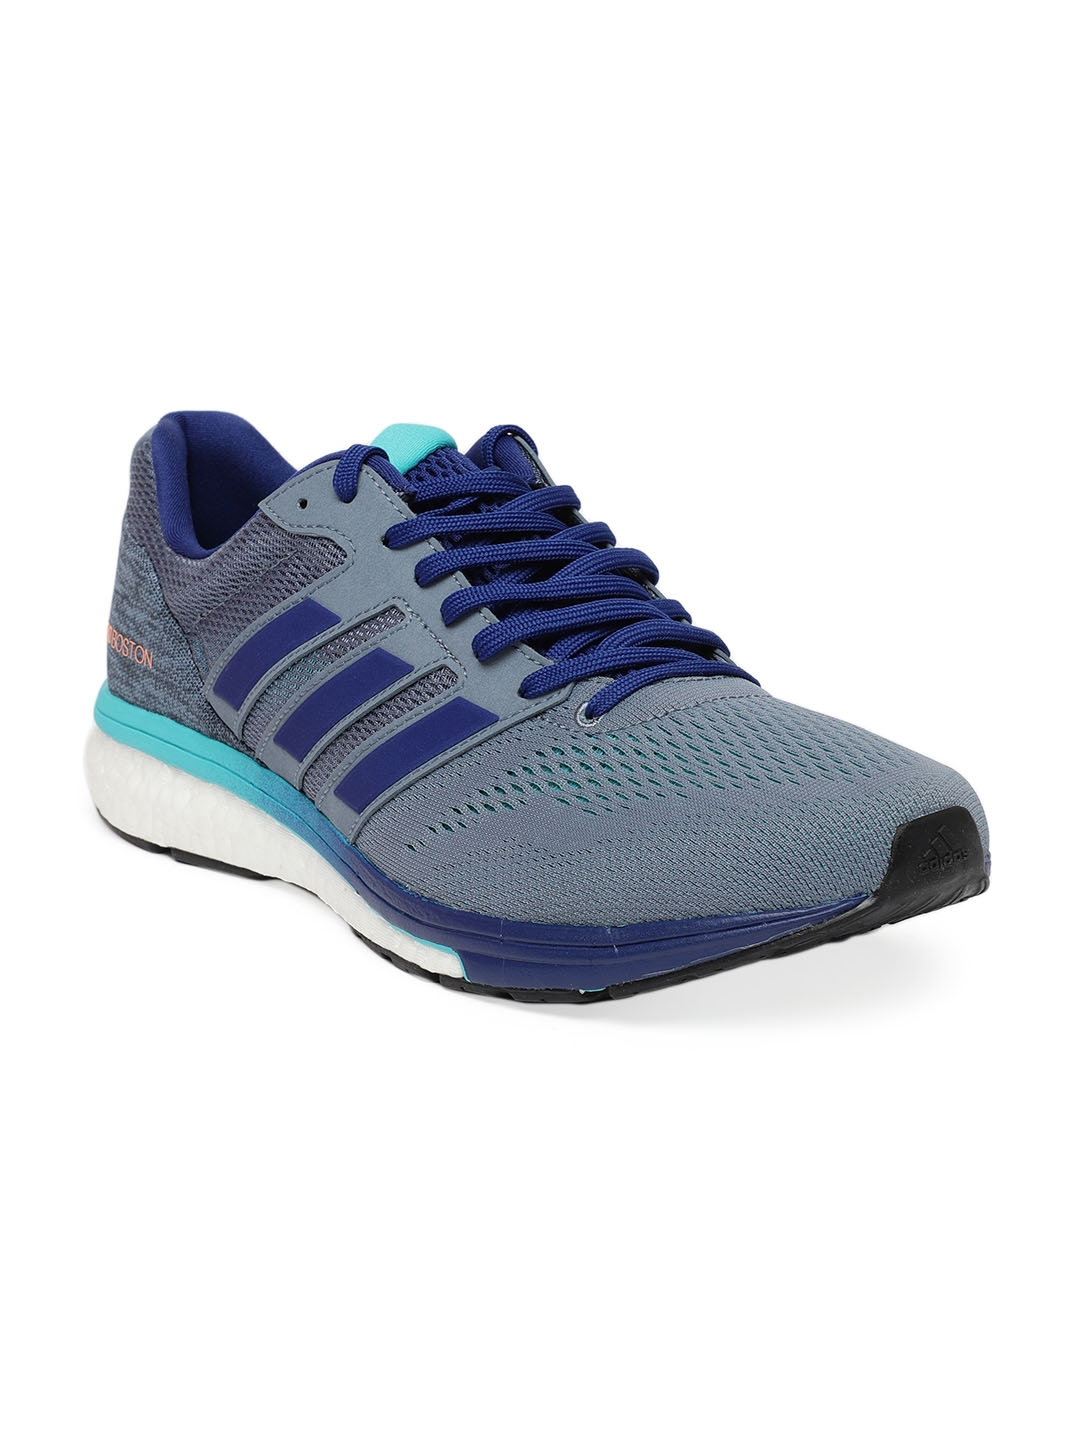 new product 97a26 e5a48 ADIDAS Men Grey ADIZERO BOSTON 7 M Running Shoes